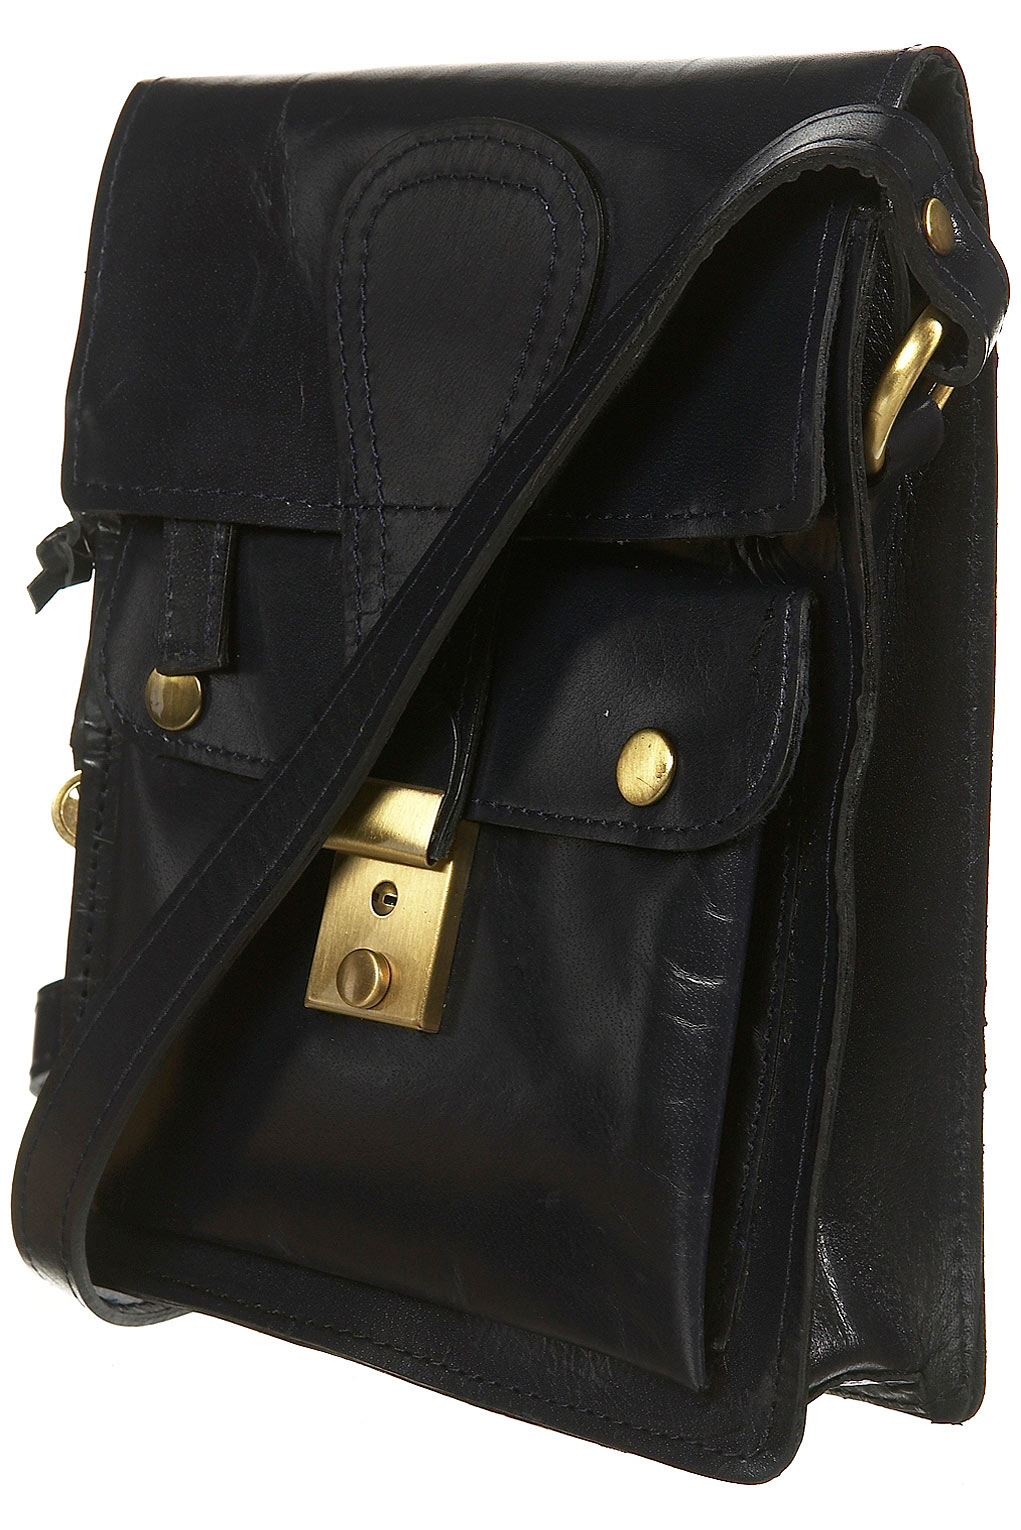 topshop-crossbody-purse